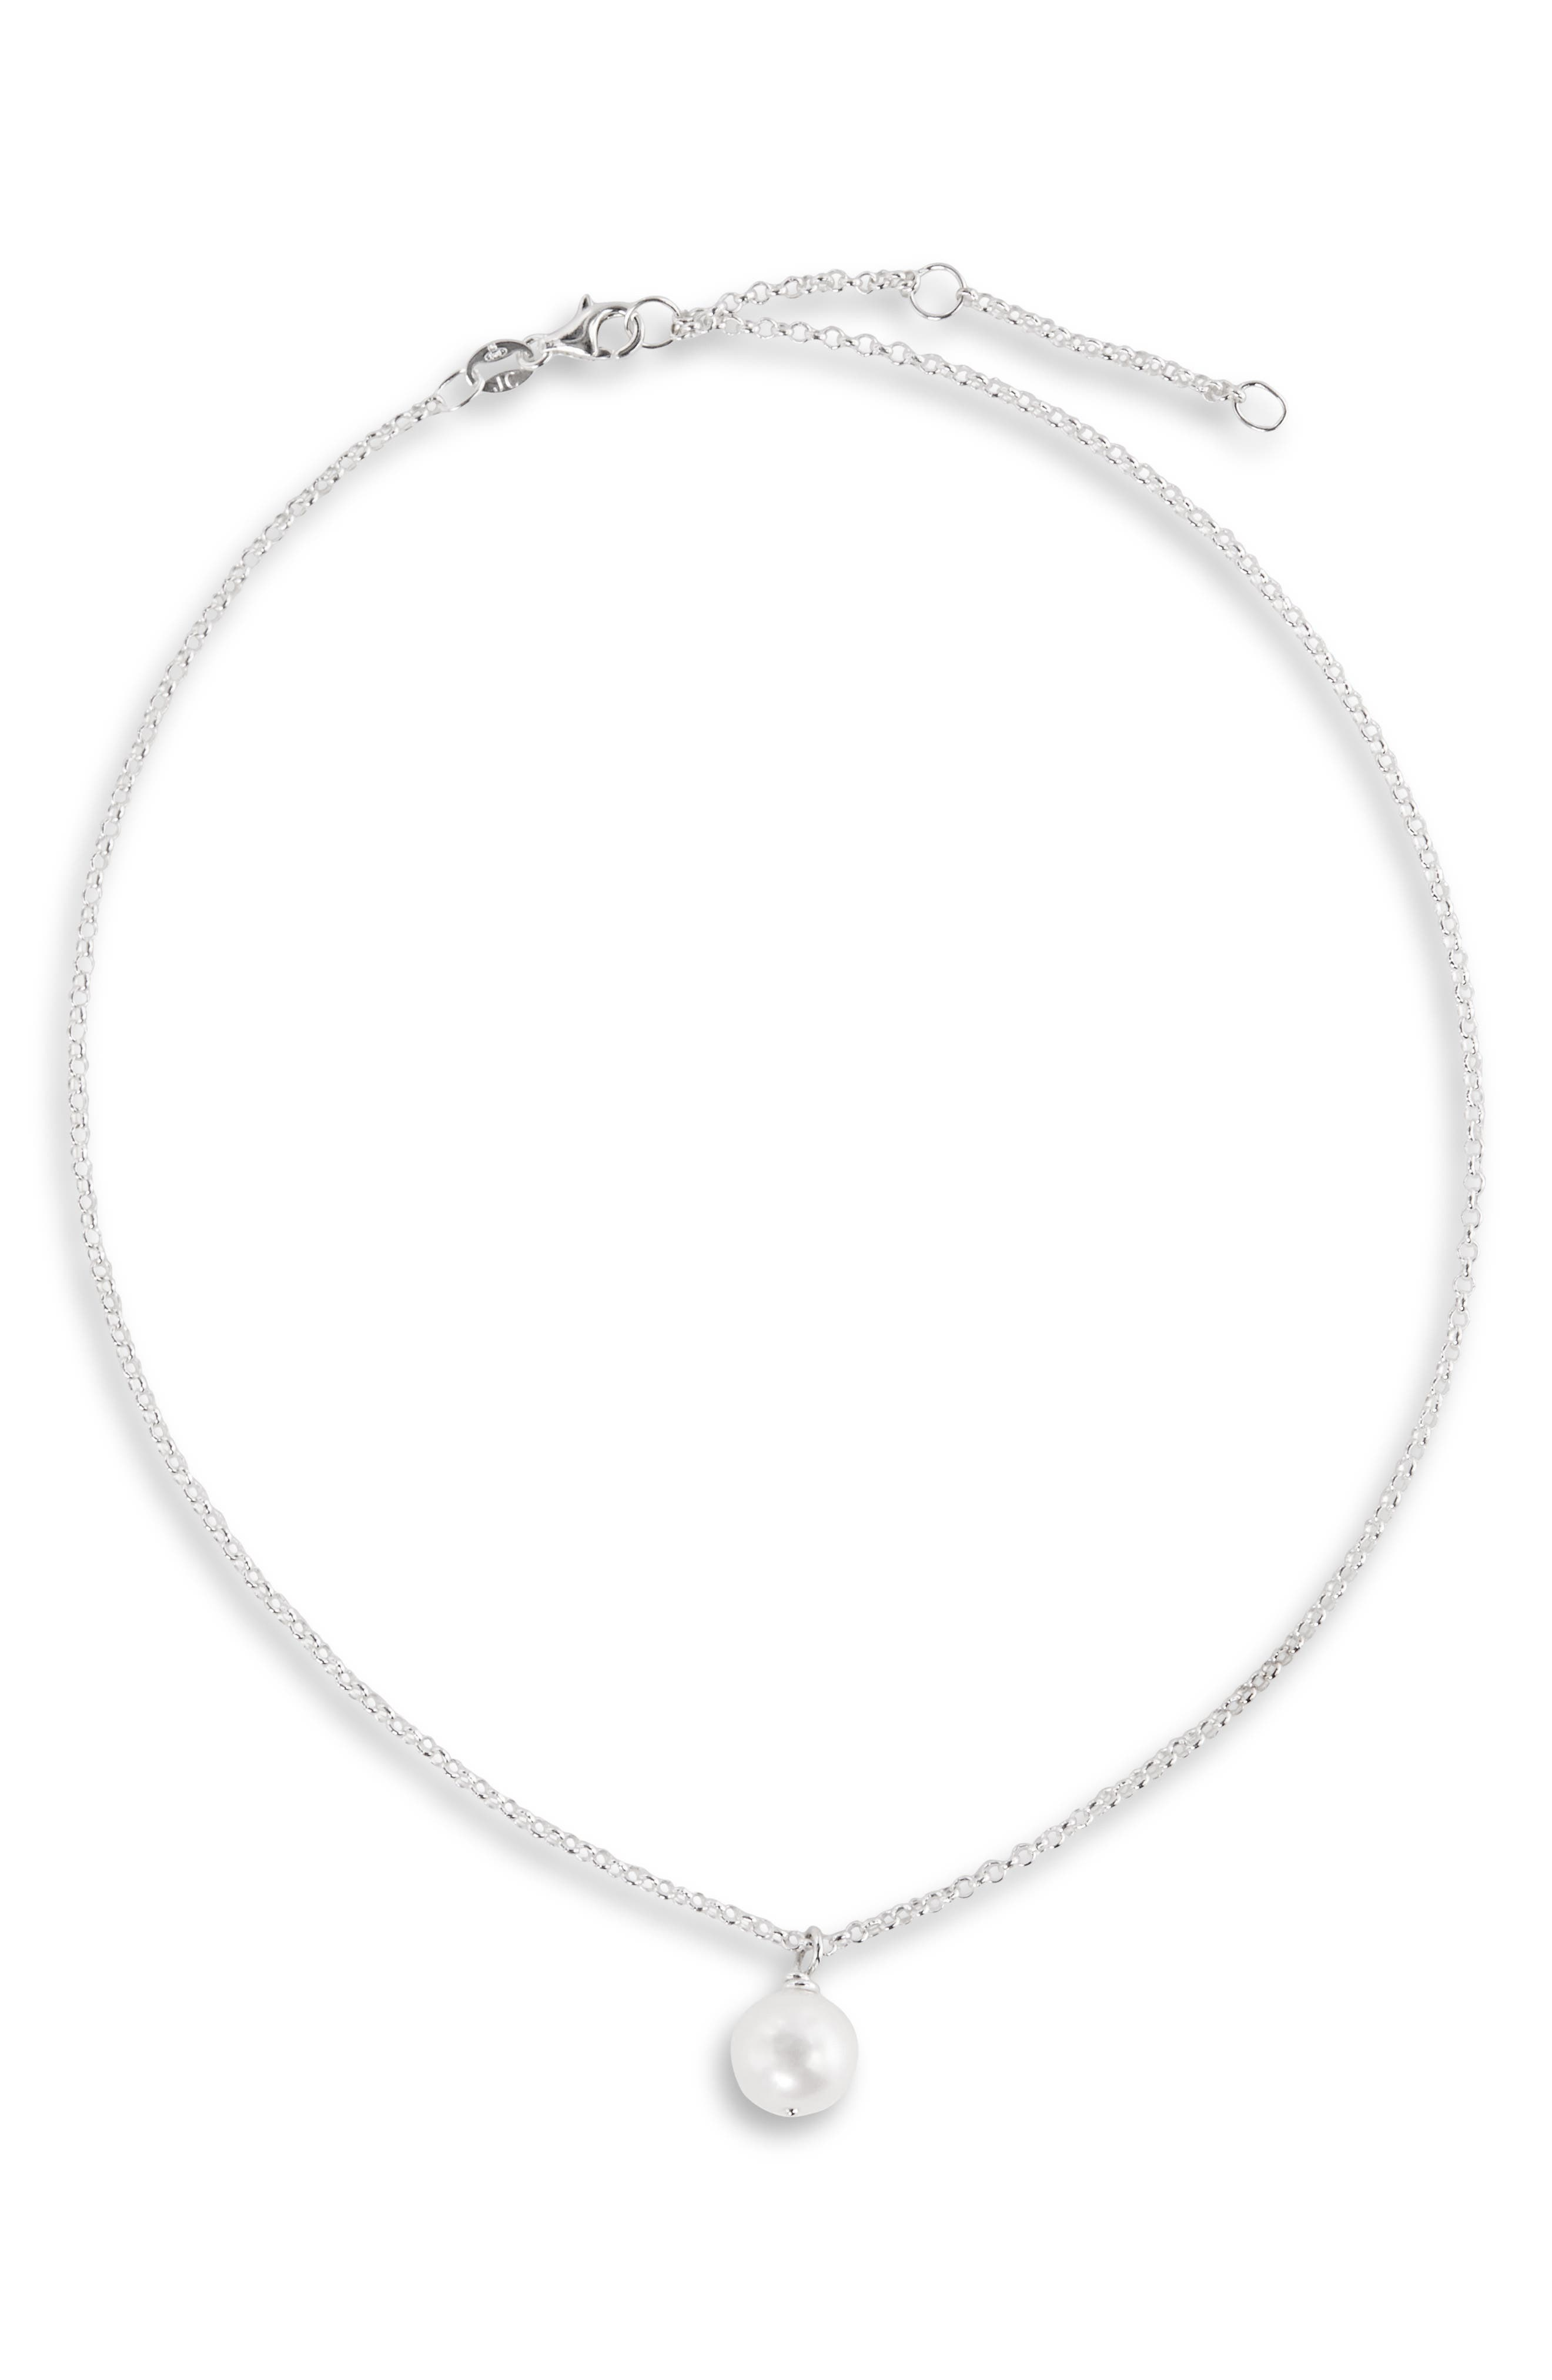 Freshwater Pearl Choker,                         Main,                         color, STERLING SILVER